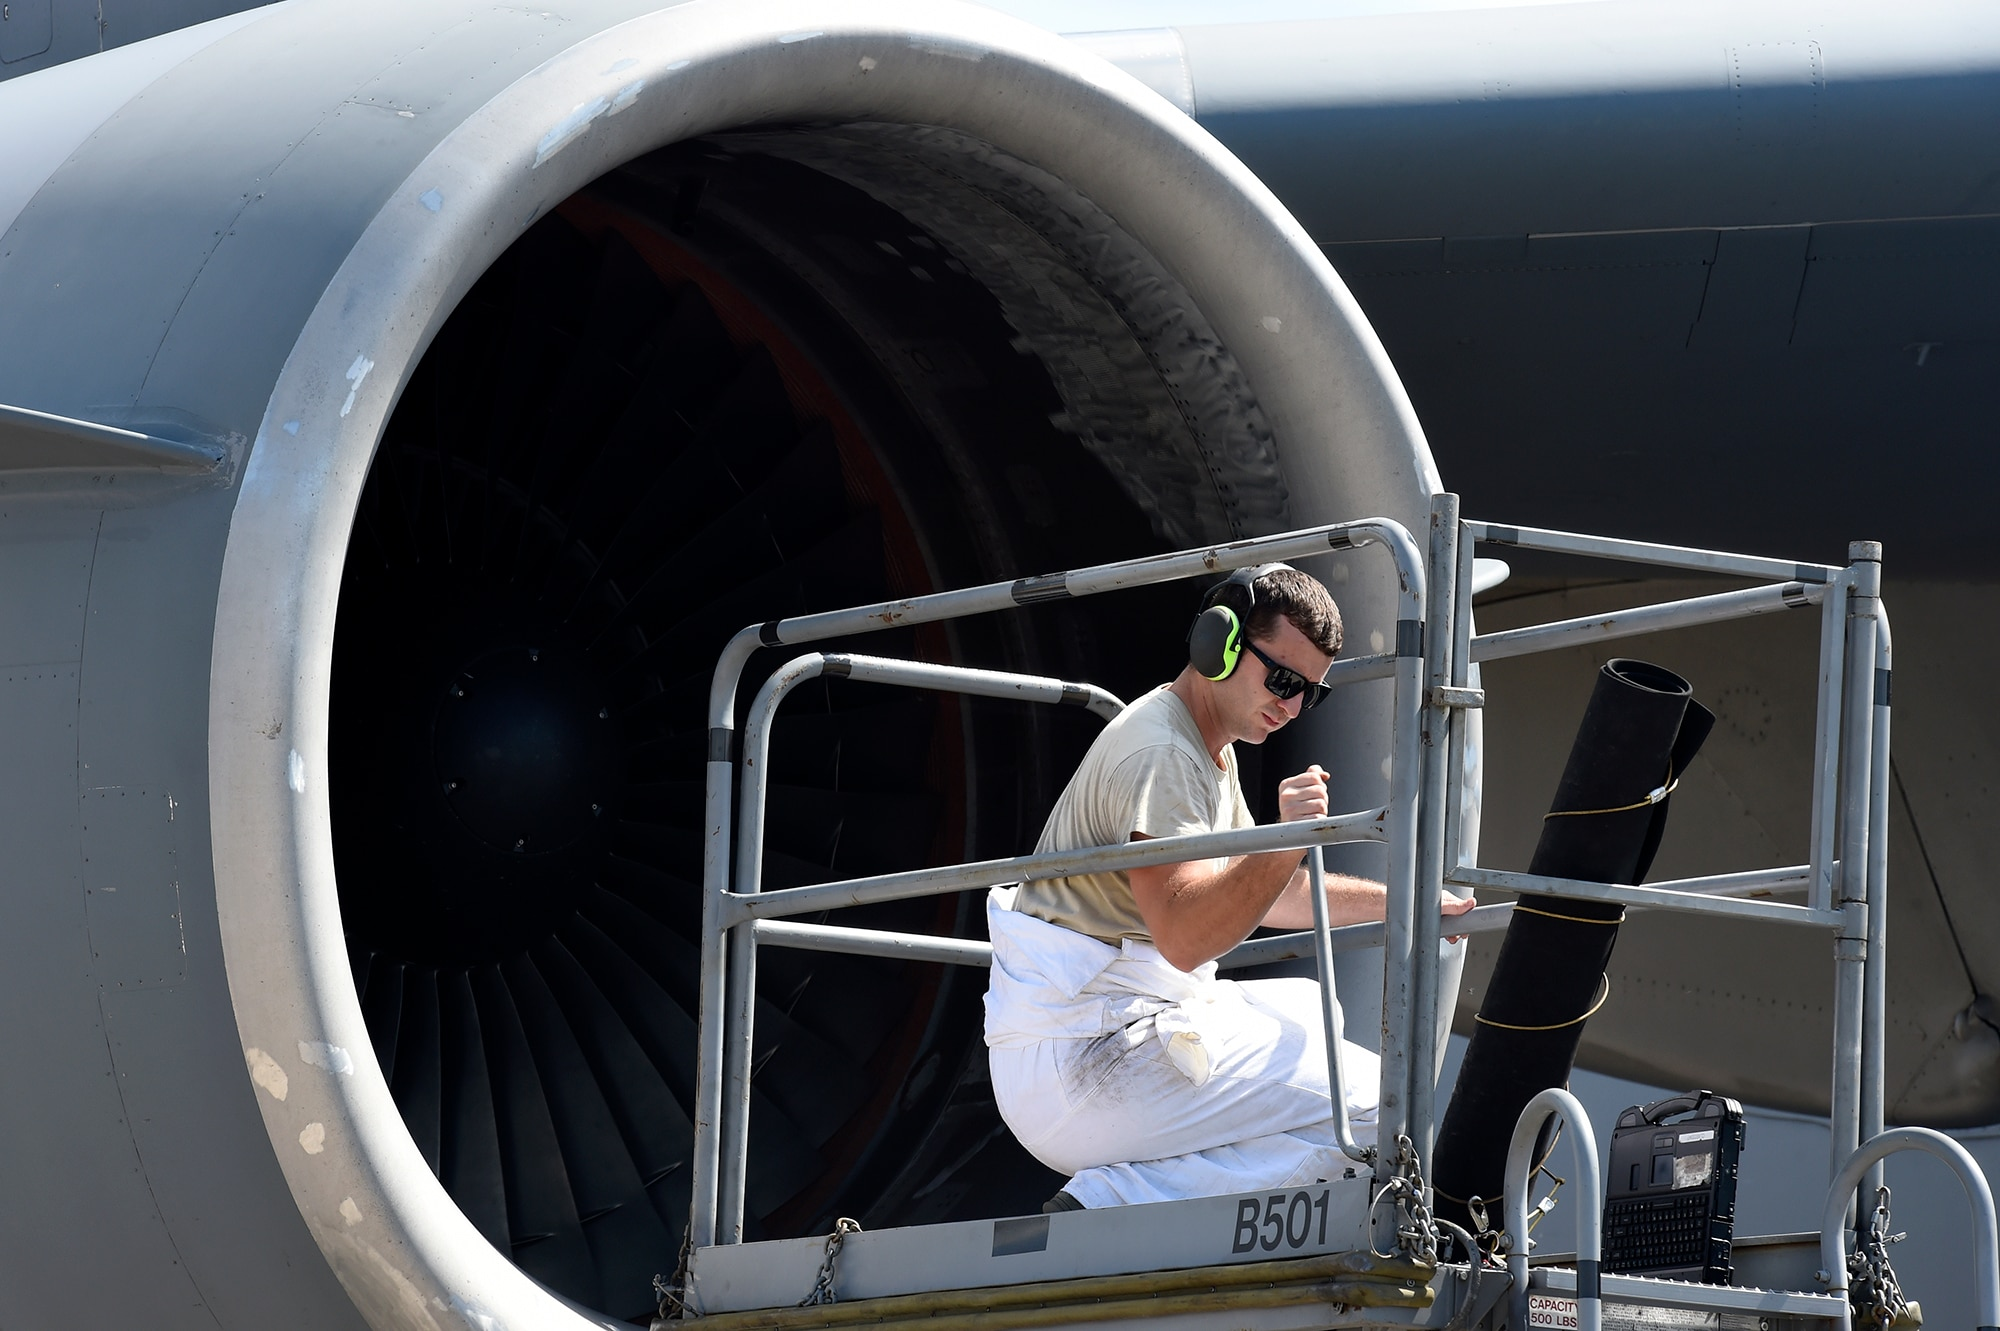 Airman 1st Class Richard Cordell, a 437th Aircraft Maintenance Squadron aerospace propulsion specialist, raises a lift before performing post-flight inspections on a C-17 Globemaster III engine Sept. 12, 2018, at Scott Air Force Base, Ill.